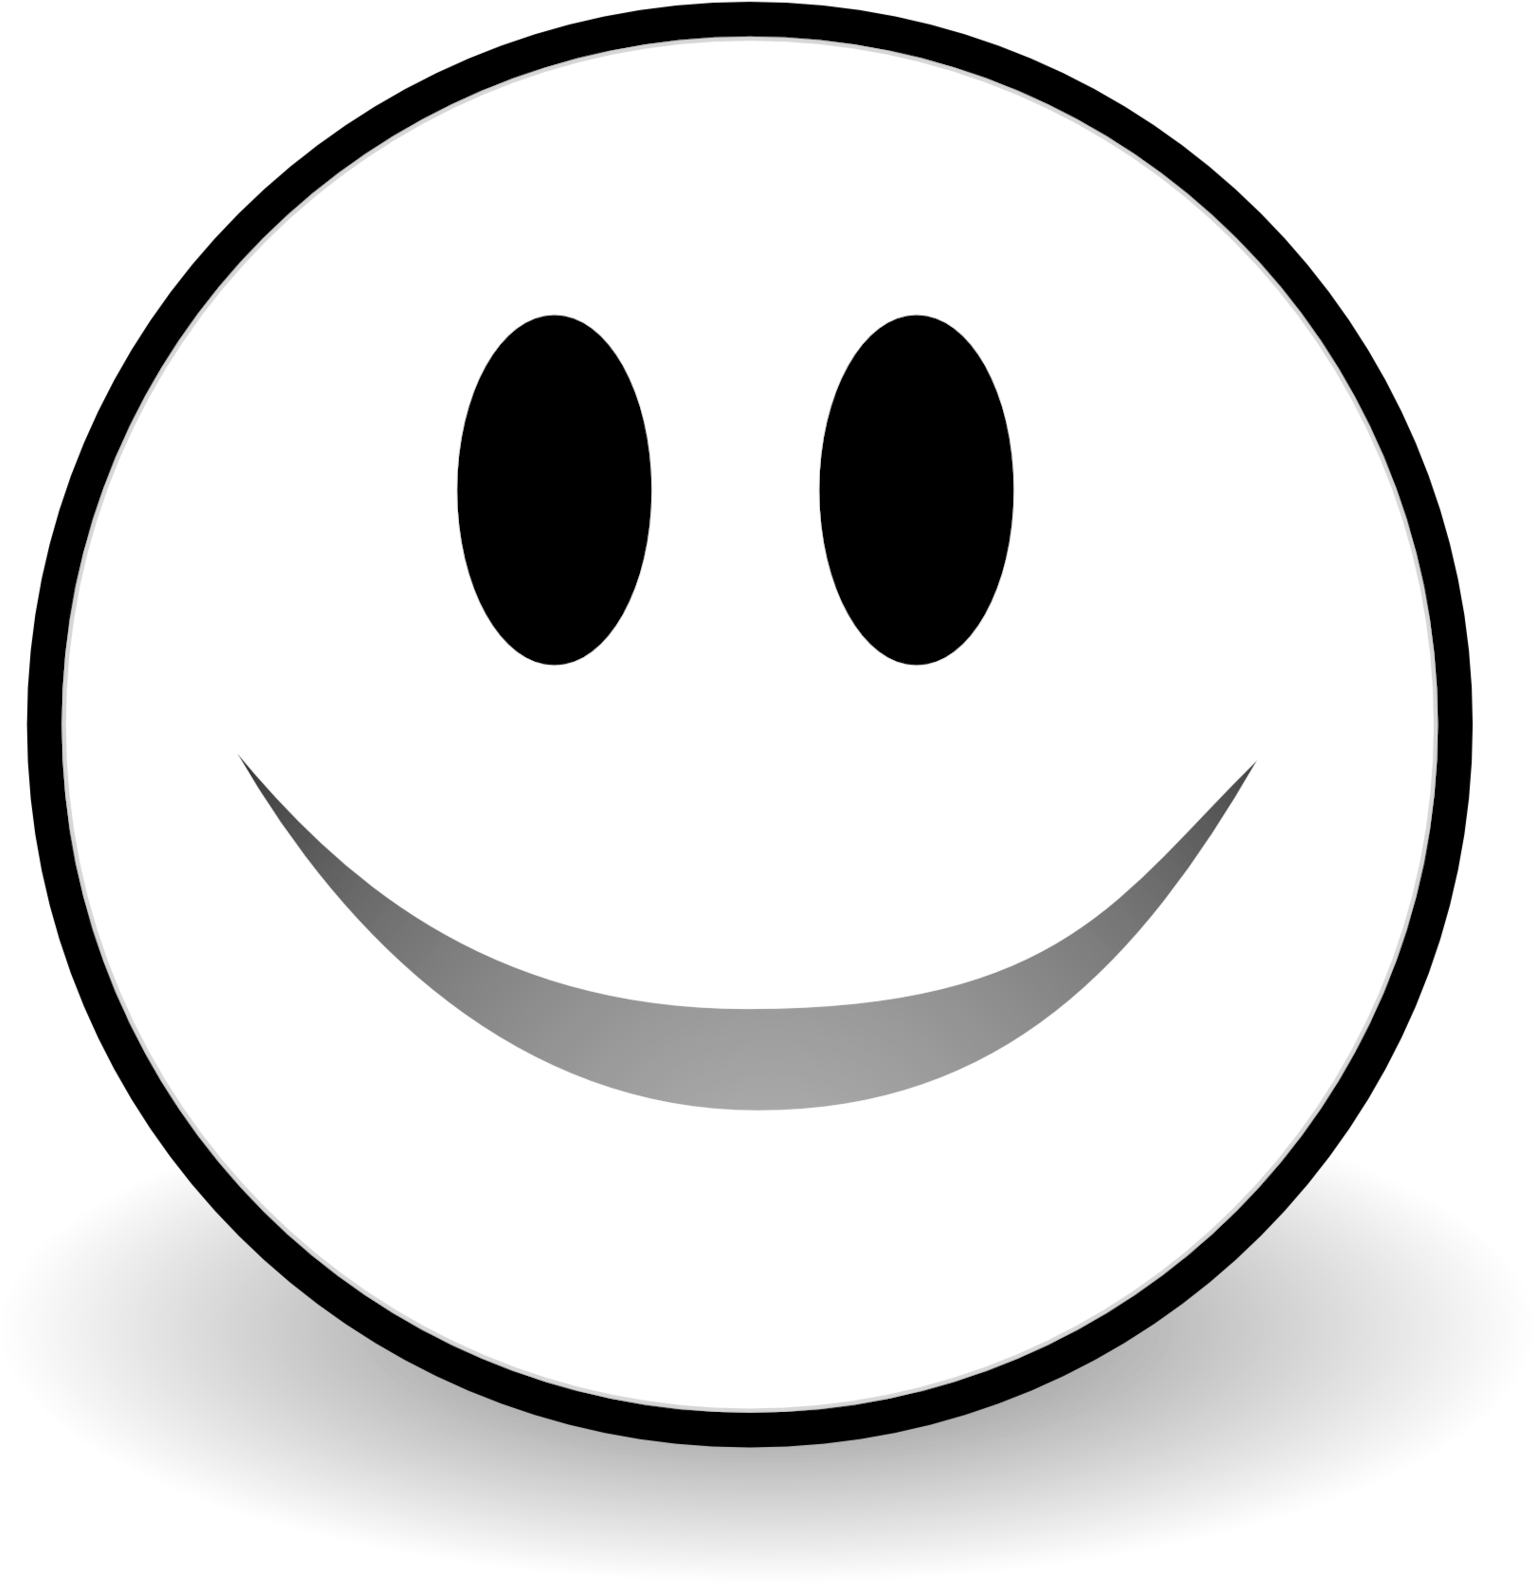 Sad face clipart black and white banner royalty free library HD Fullsize Of Black And White Smiley Face - Sad Face ... banner royalty free library